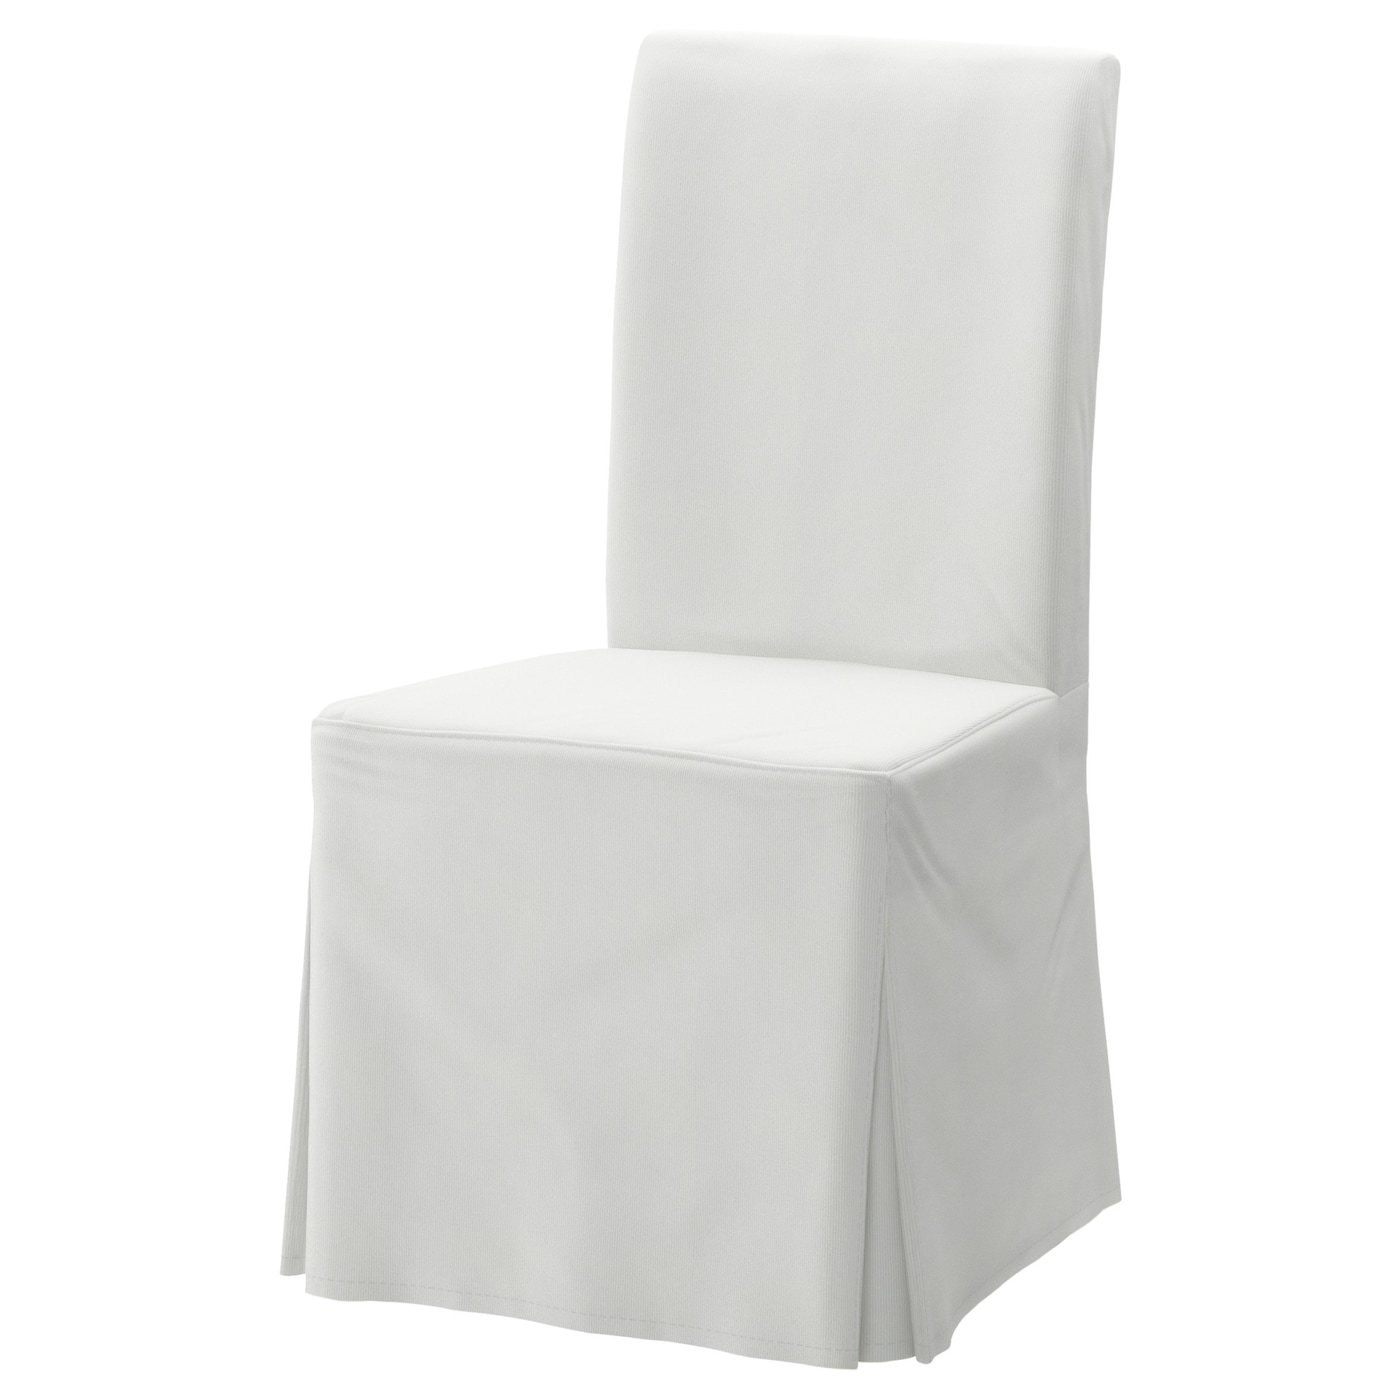 Marvelous Chair Cover Long Henriksdal Blekinge White Inzonedesignstudio Interior Chair Design Inzonedesignstudiocom